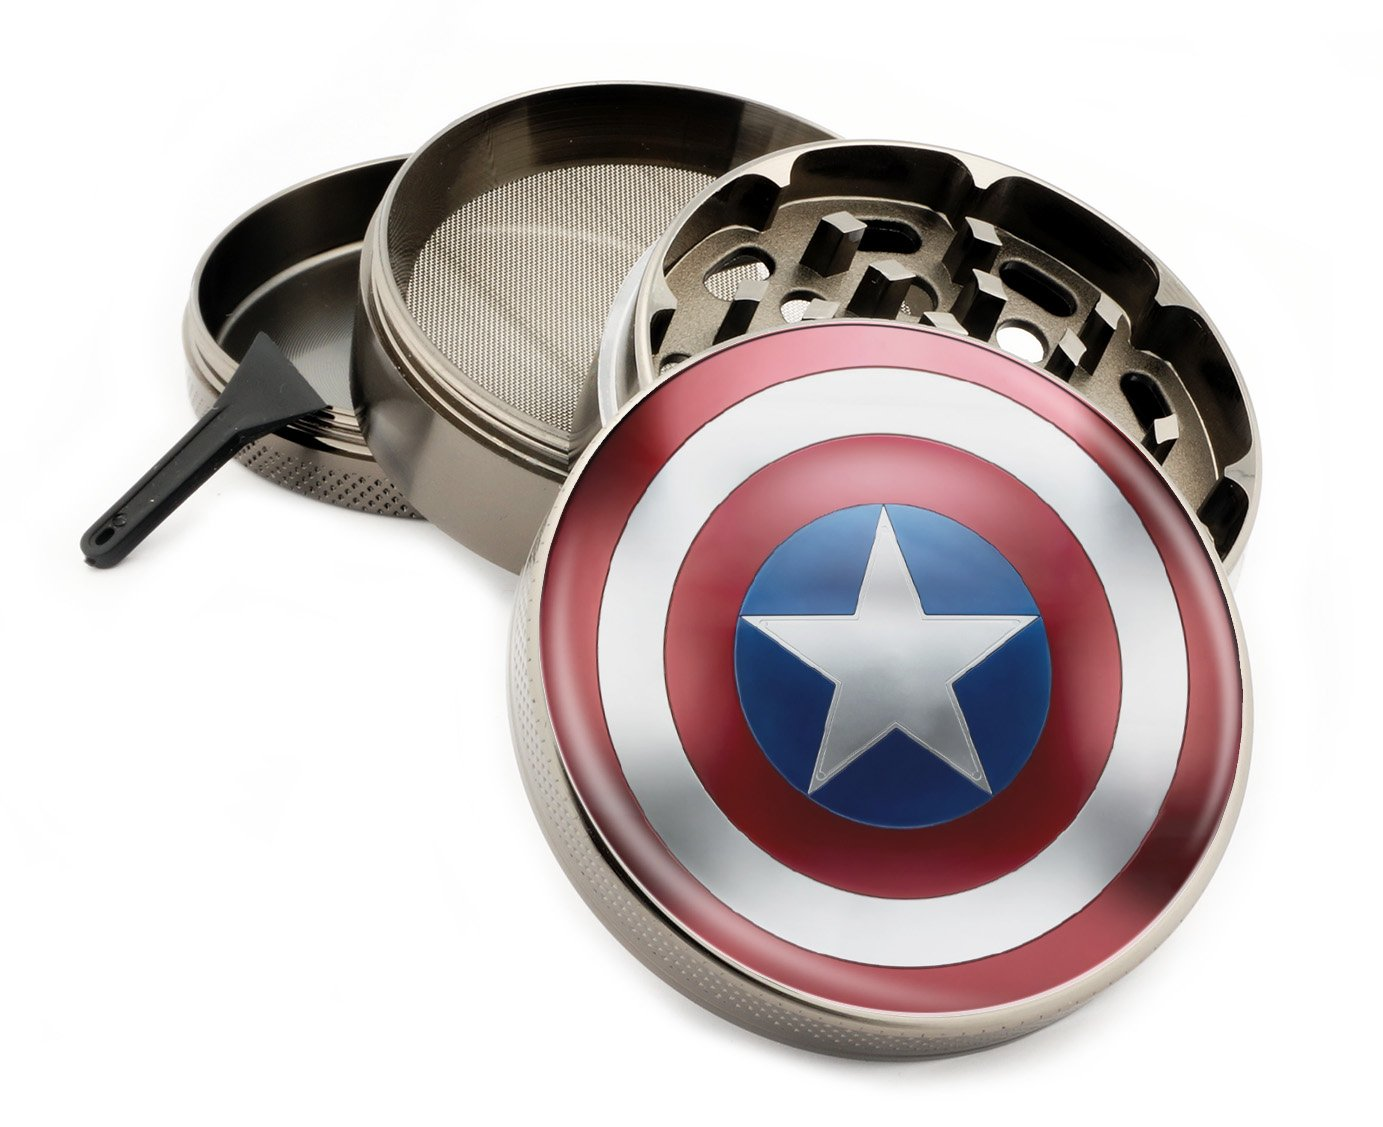 Star Wars & Superhero Themed 4 Layer Herb Grinders with Bonus Scraper (Captain America)